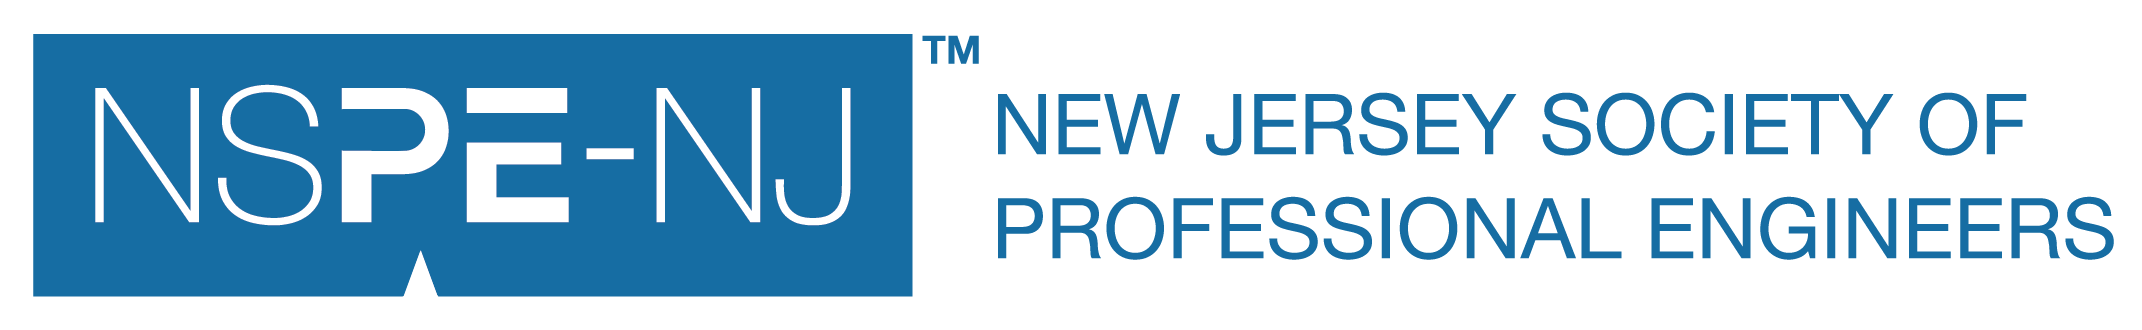 New Jersey Societs of Professional Engineers